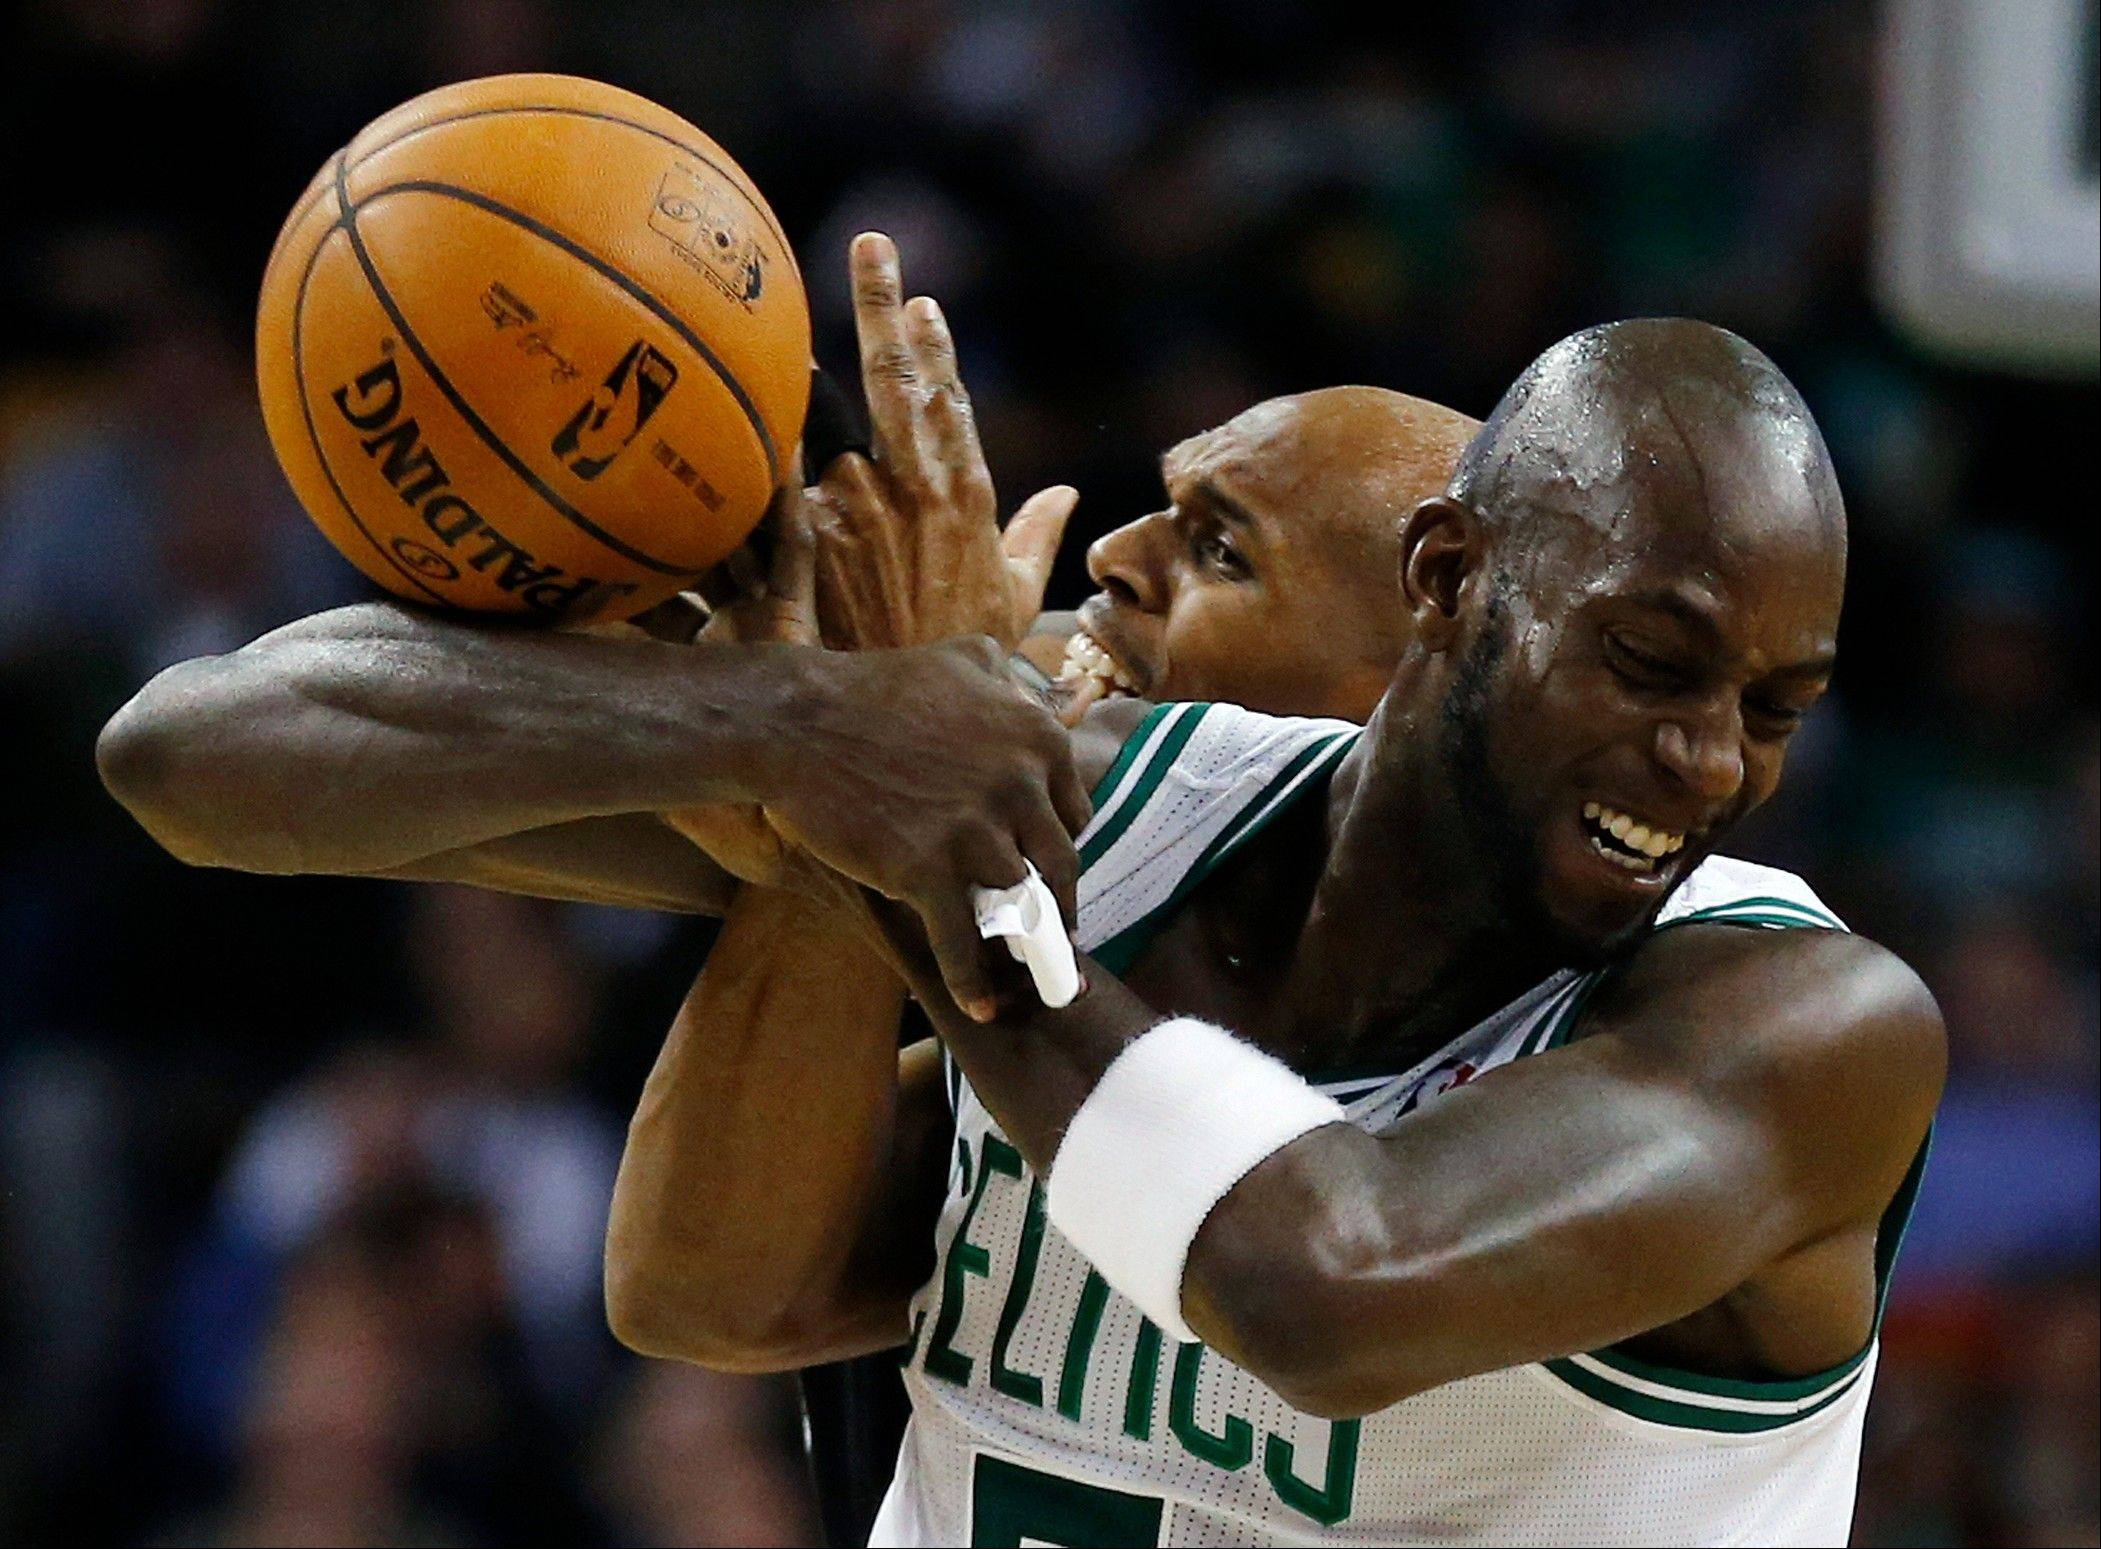 Boston Celtics forward Kevin Garnett, right, and the Brooklyn Nets' Jerry Stackhouse battle for a loose ball Wednesday during the second quarter in Boston.